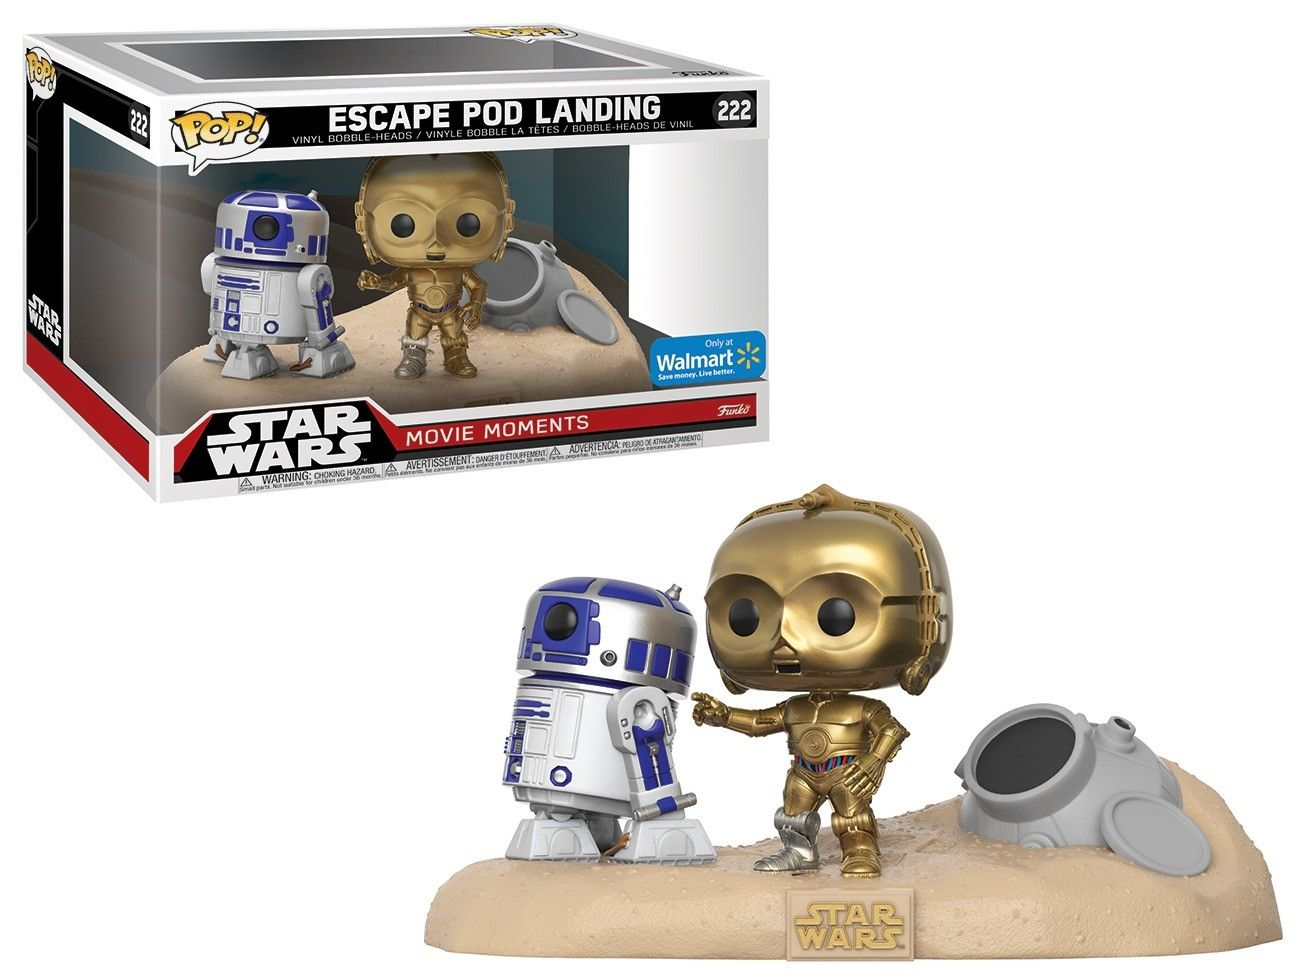 Funko Pop! Escape Pod Landing (R2-D2/C-3PO): Star Wars (Movie Moments) Exclusivo #222 - Funko